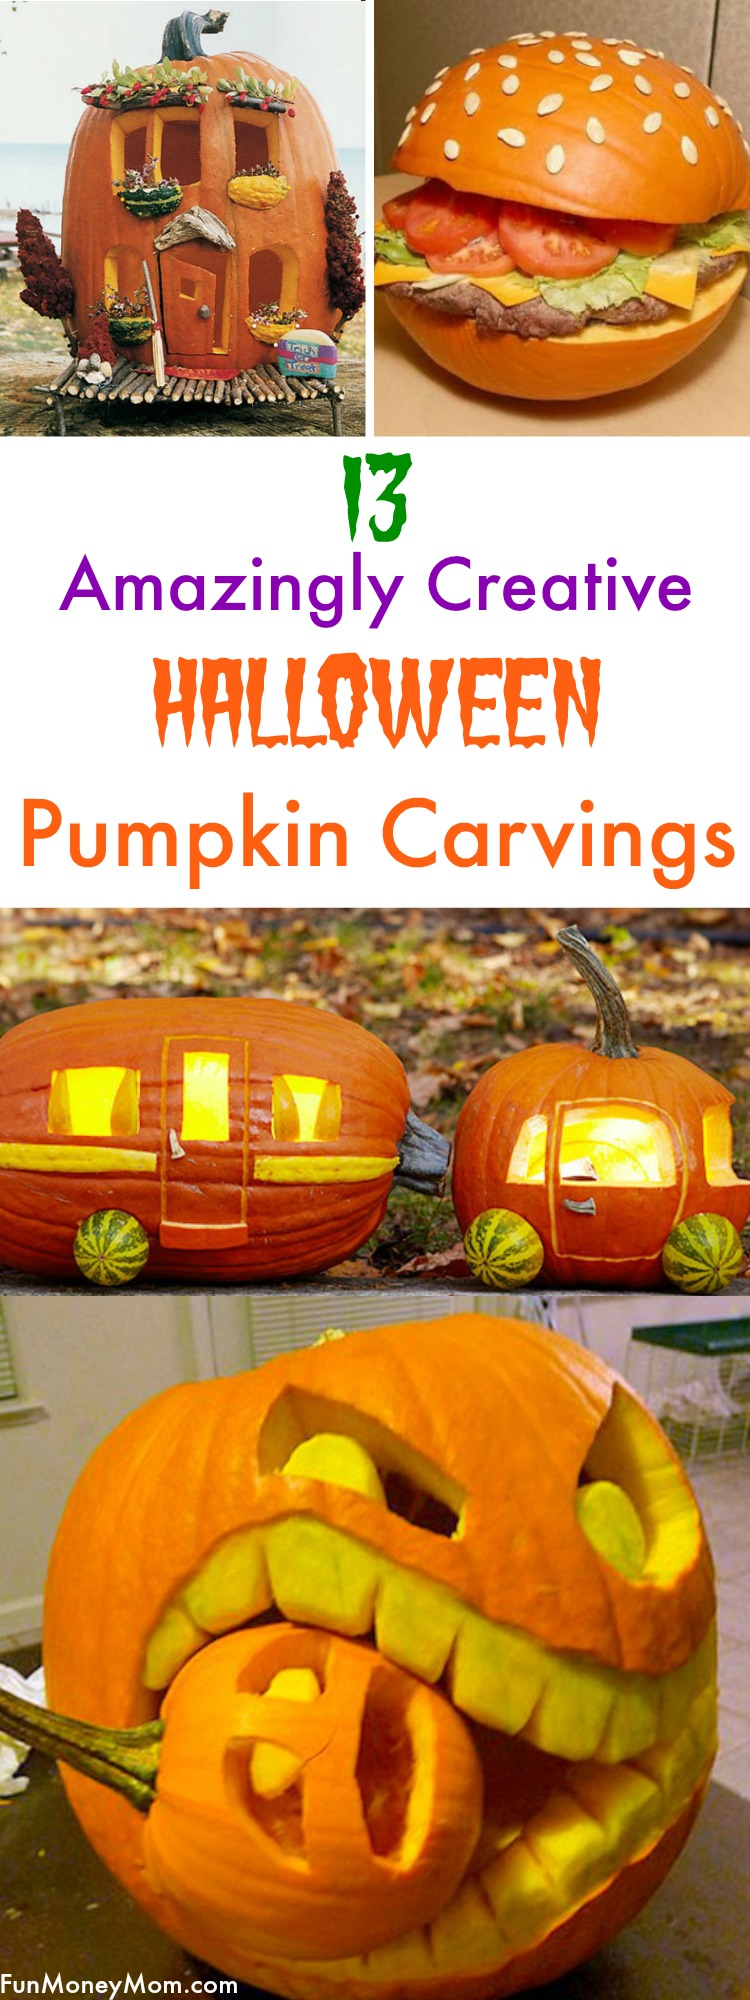 Halloween Pumpkin Carvings That Will Blow Your